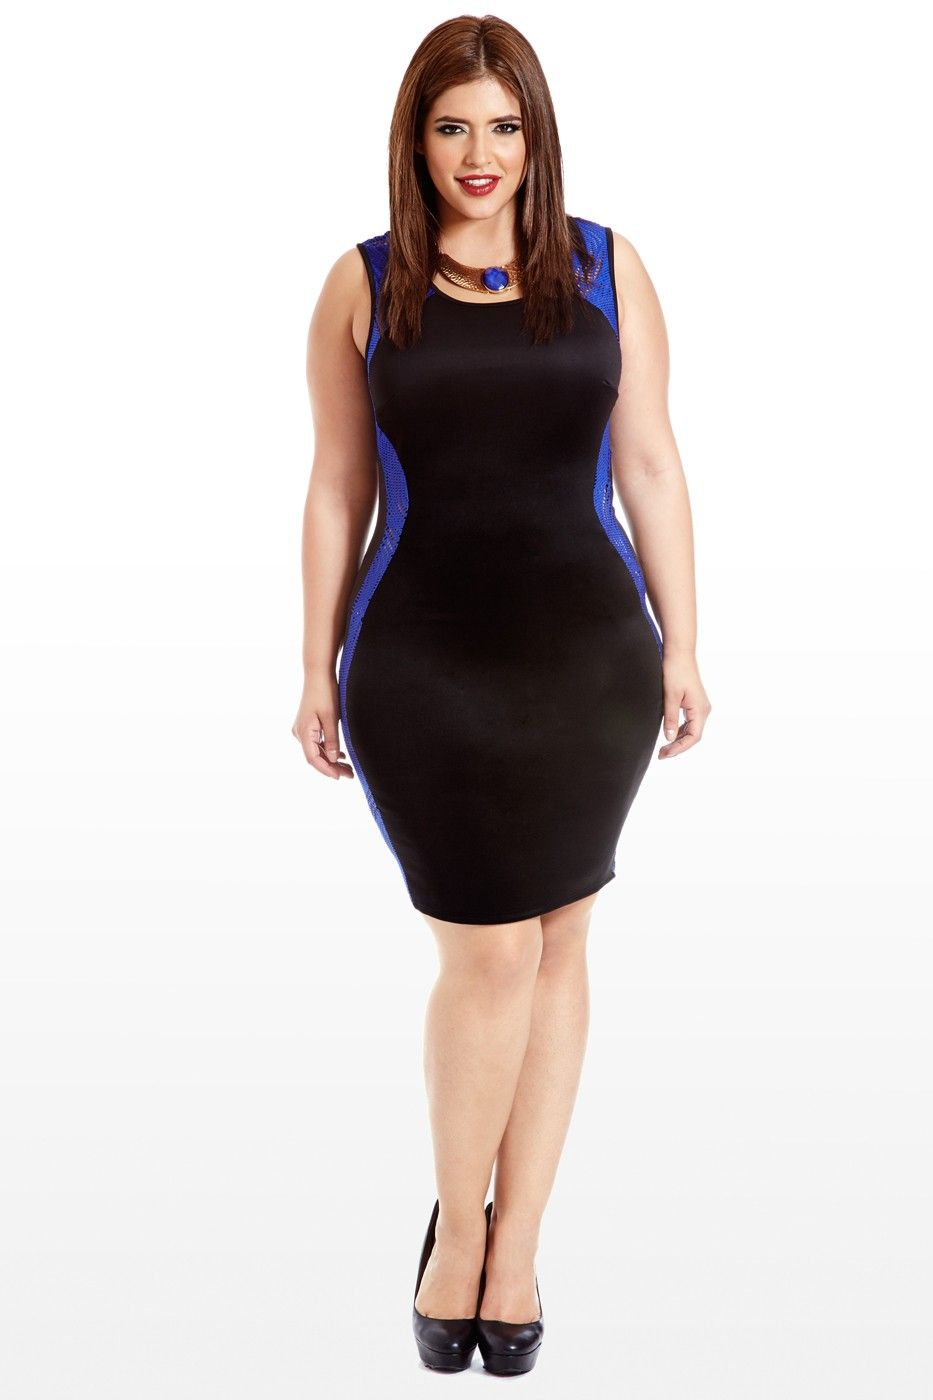 Curve is the word knit panel dress chuvyy pinterest panel